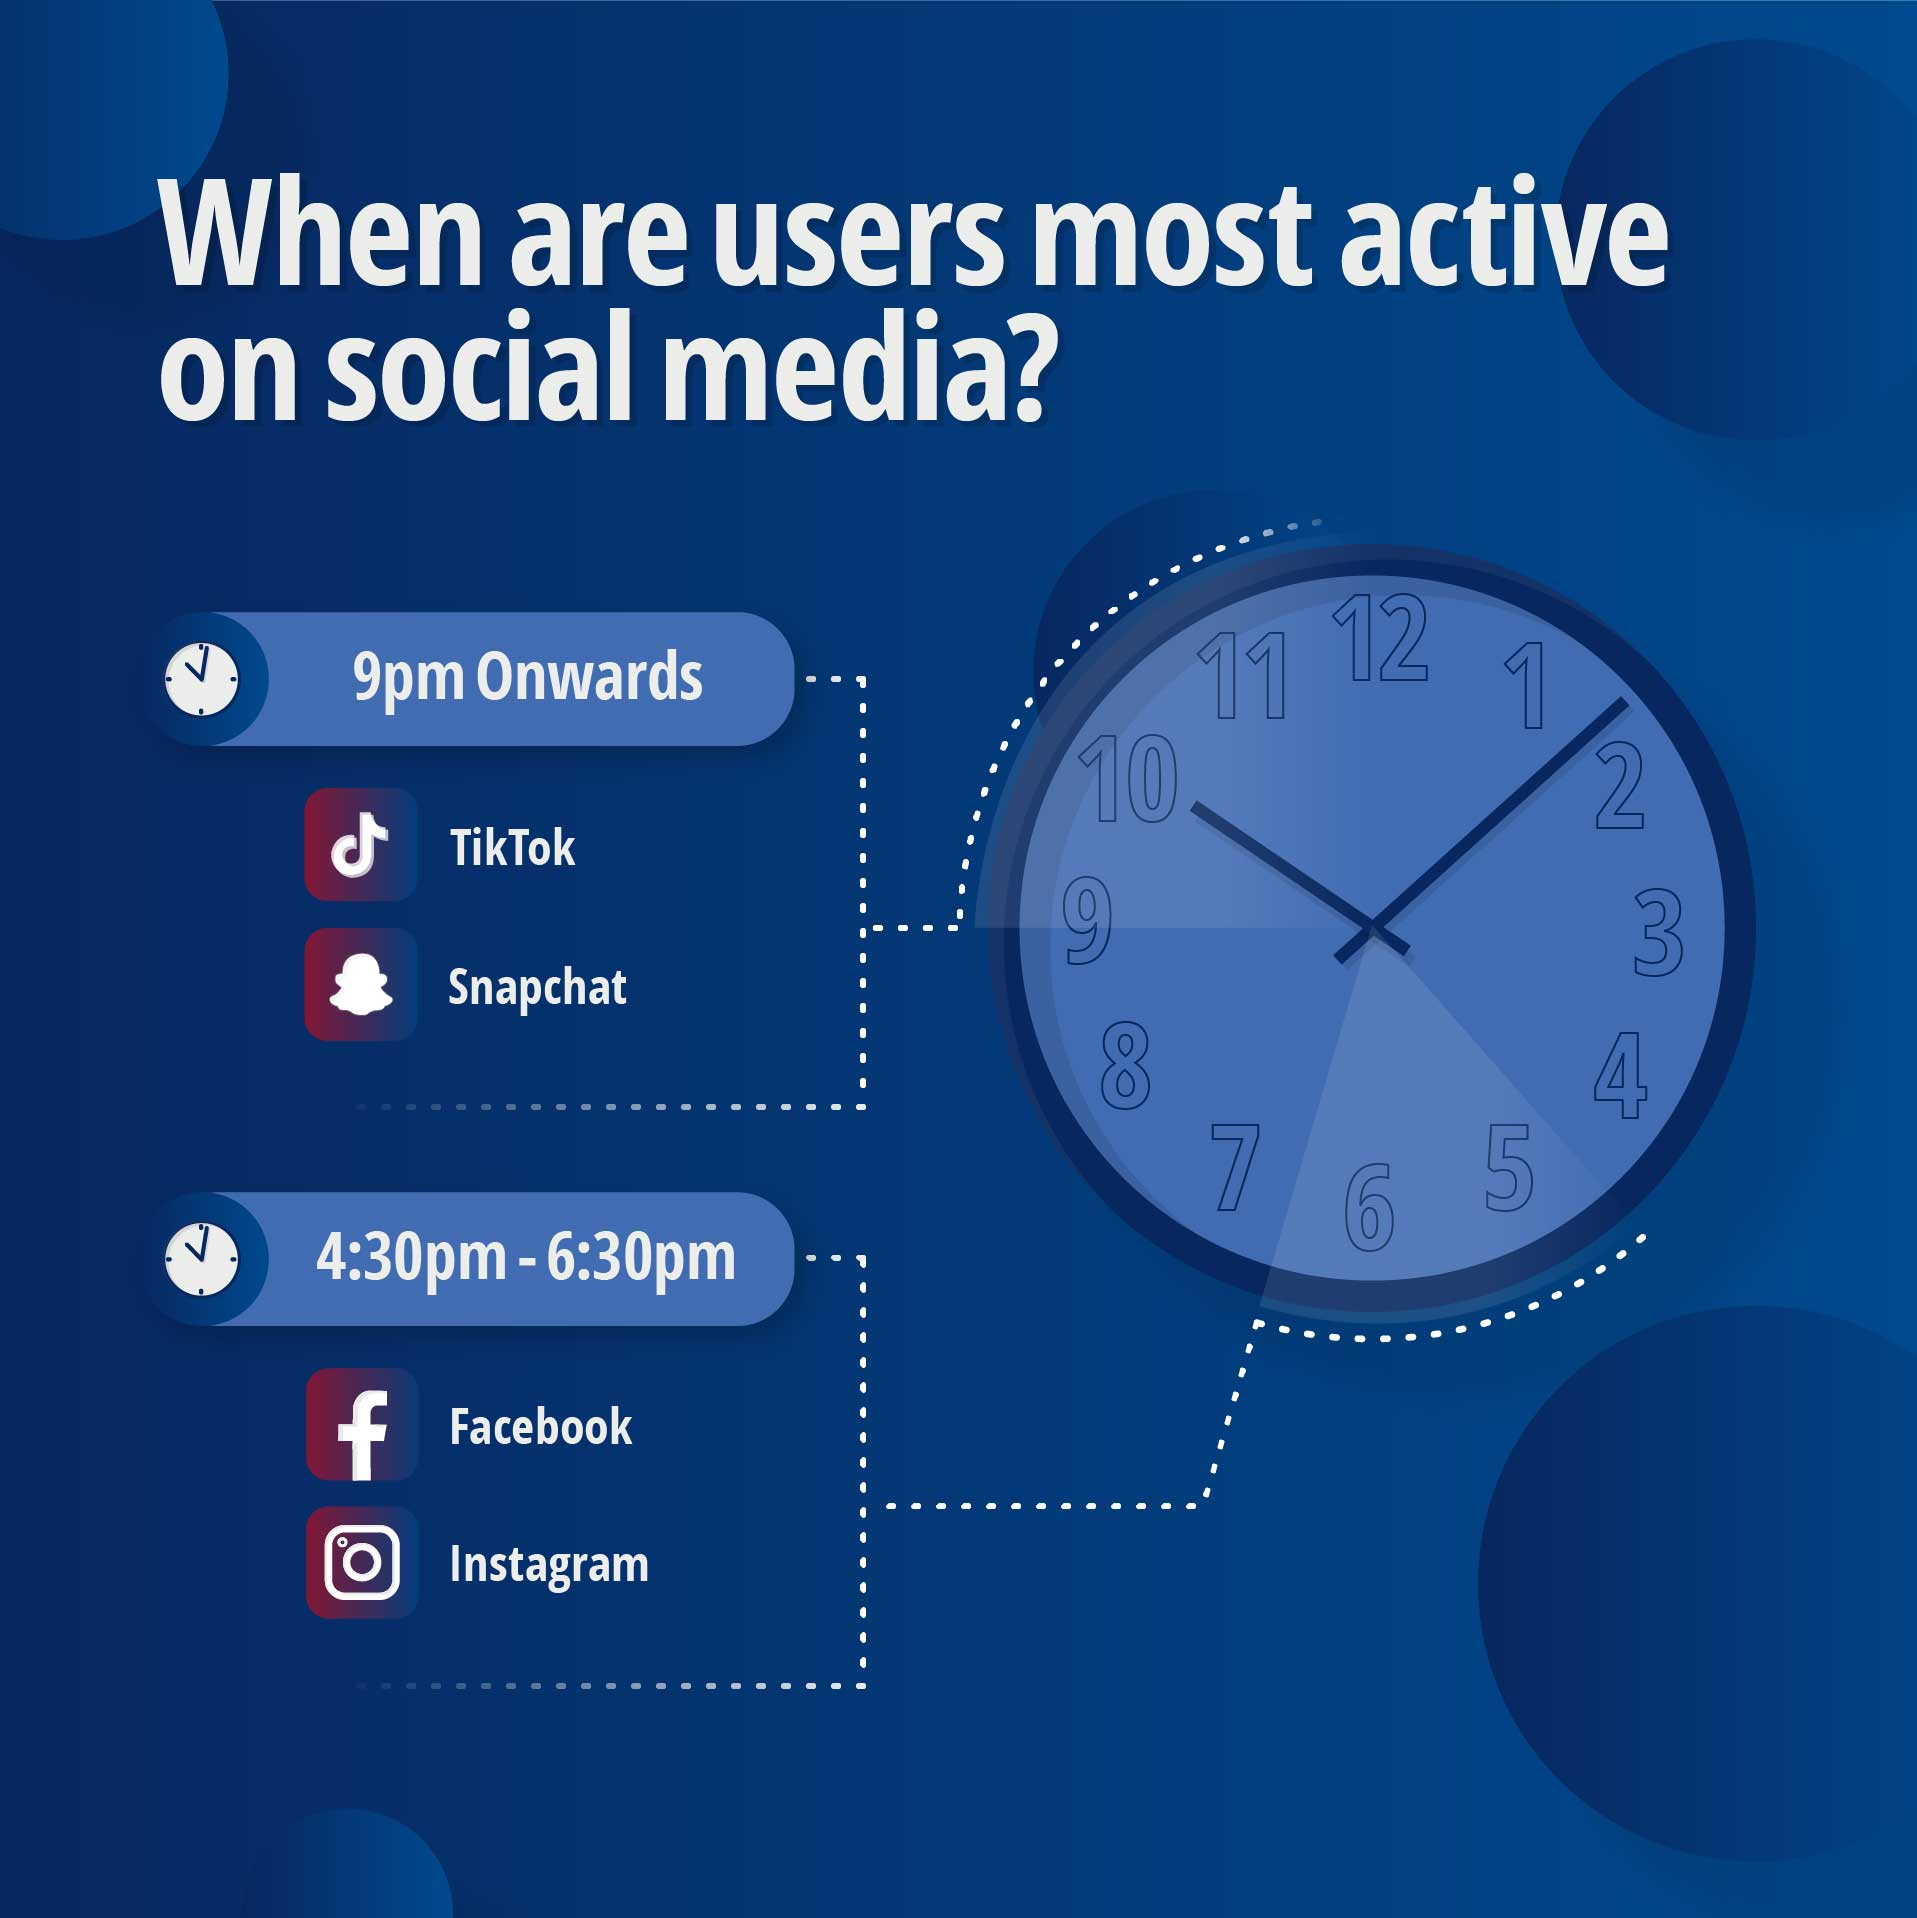 When are users most active on social media?